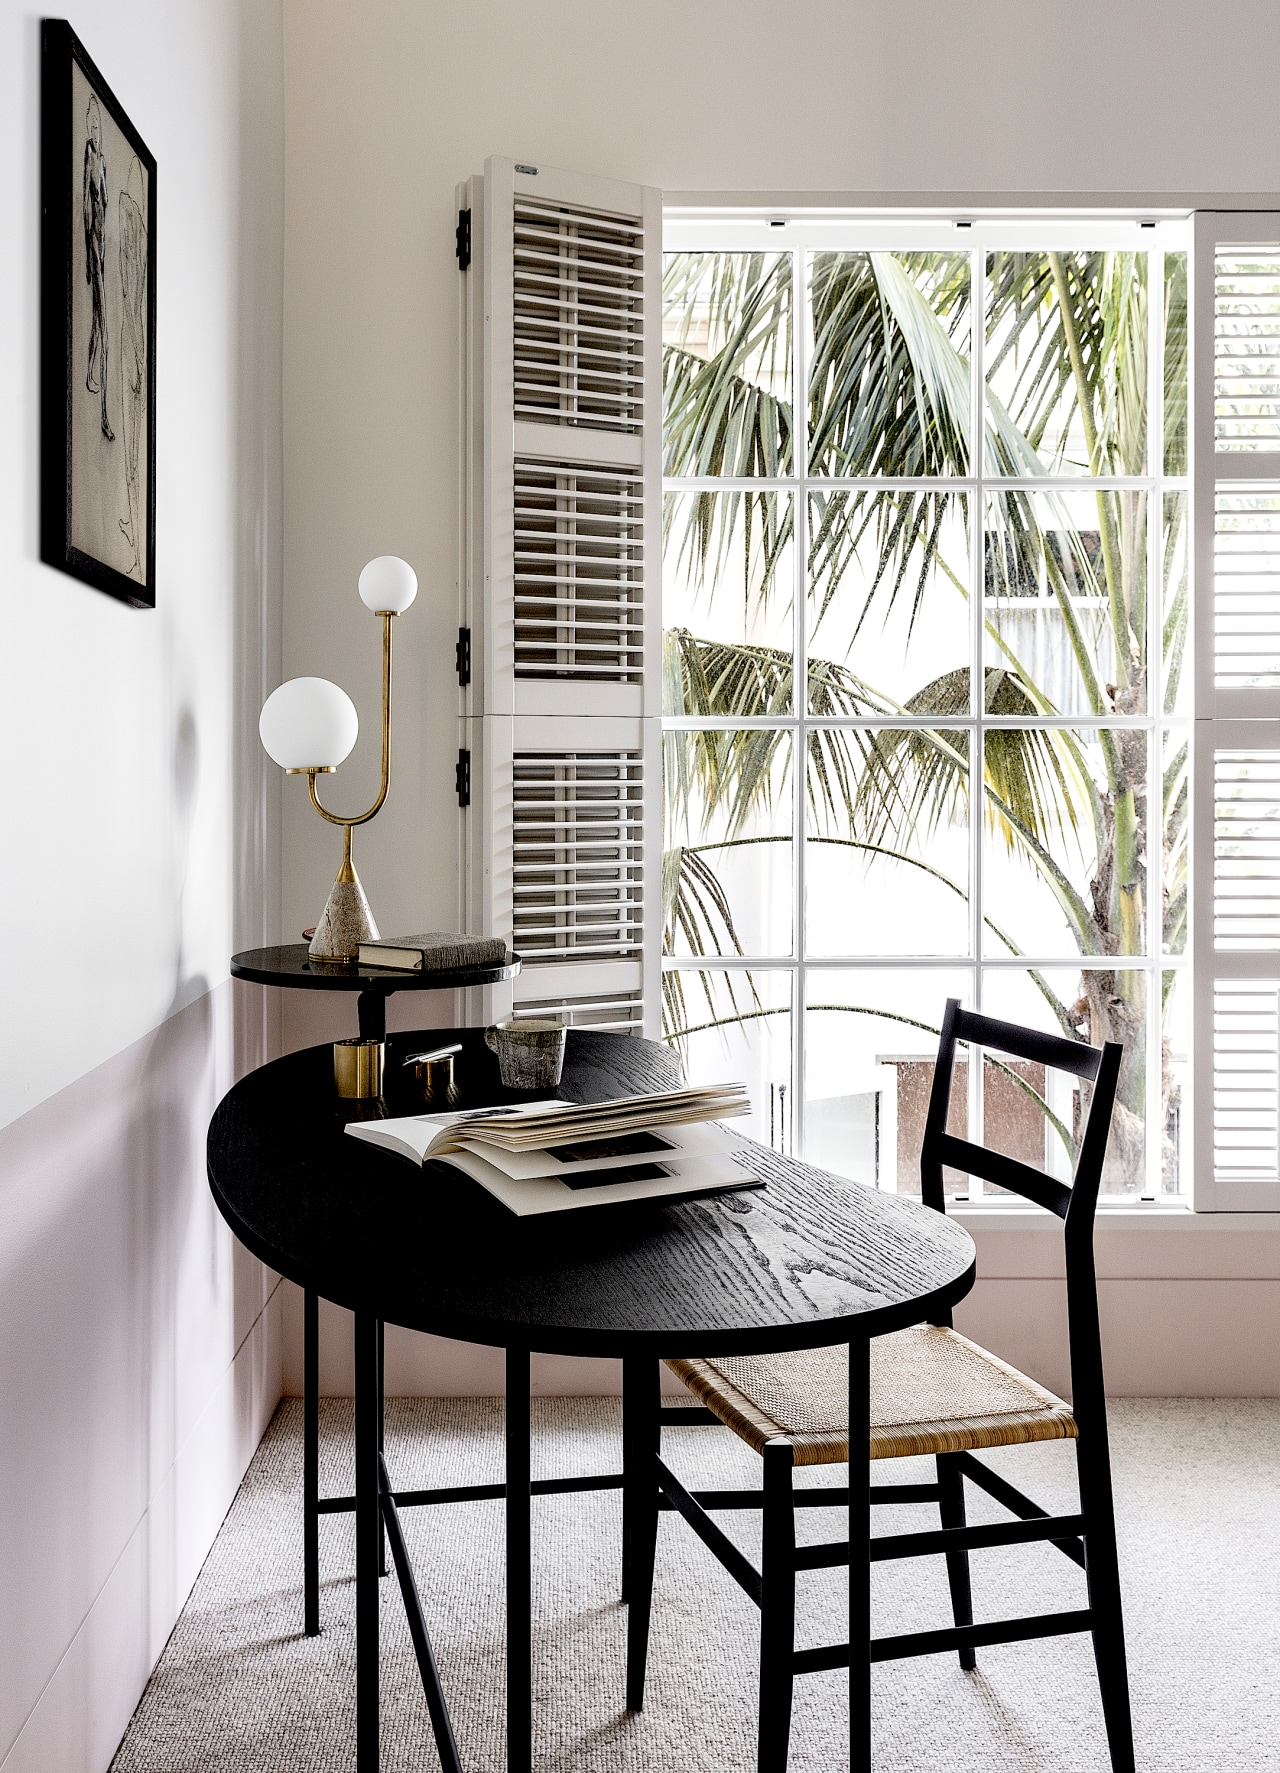 District views are carefully framed by paneled and white